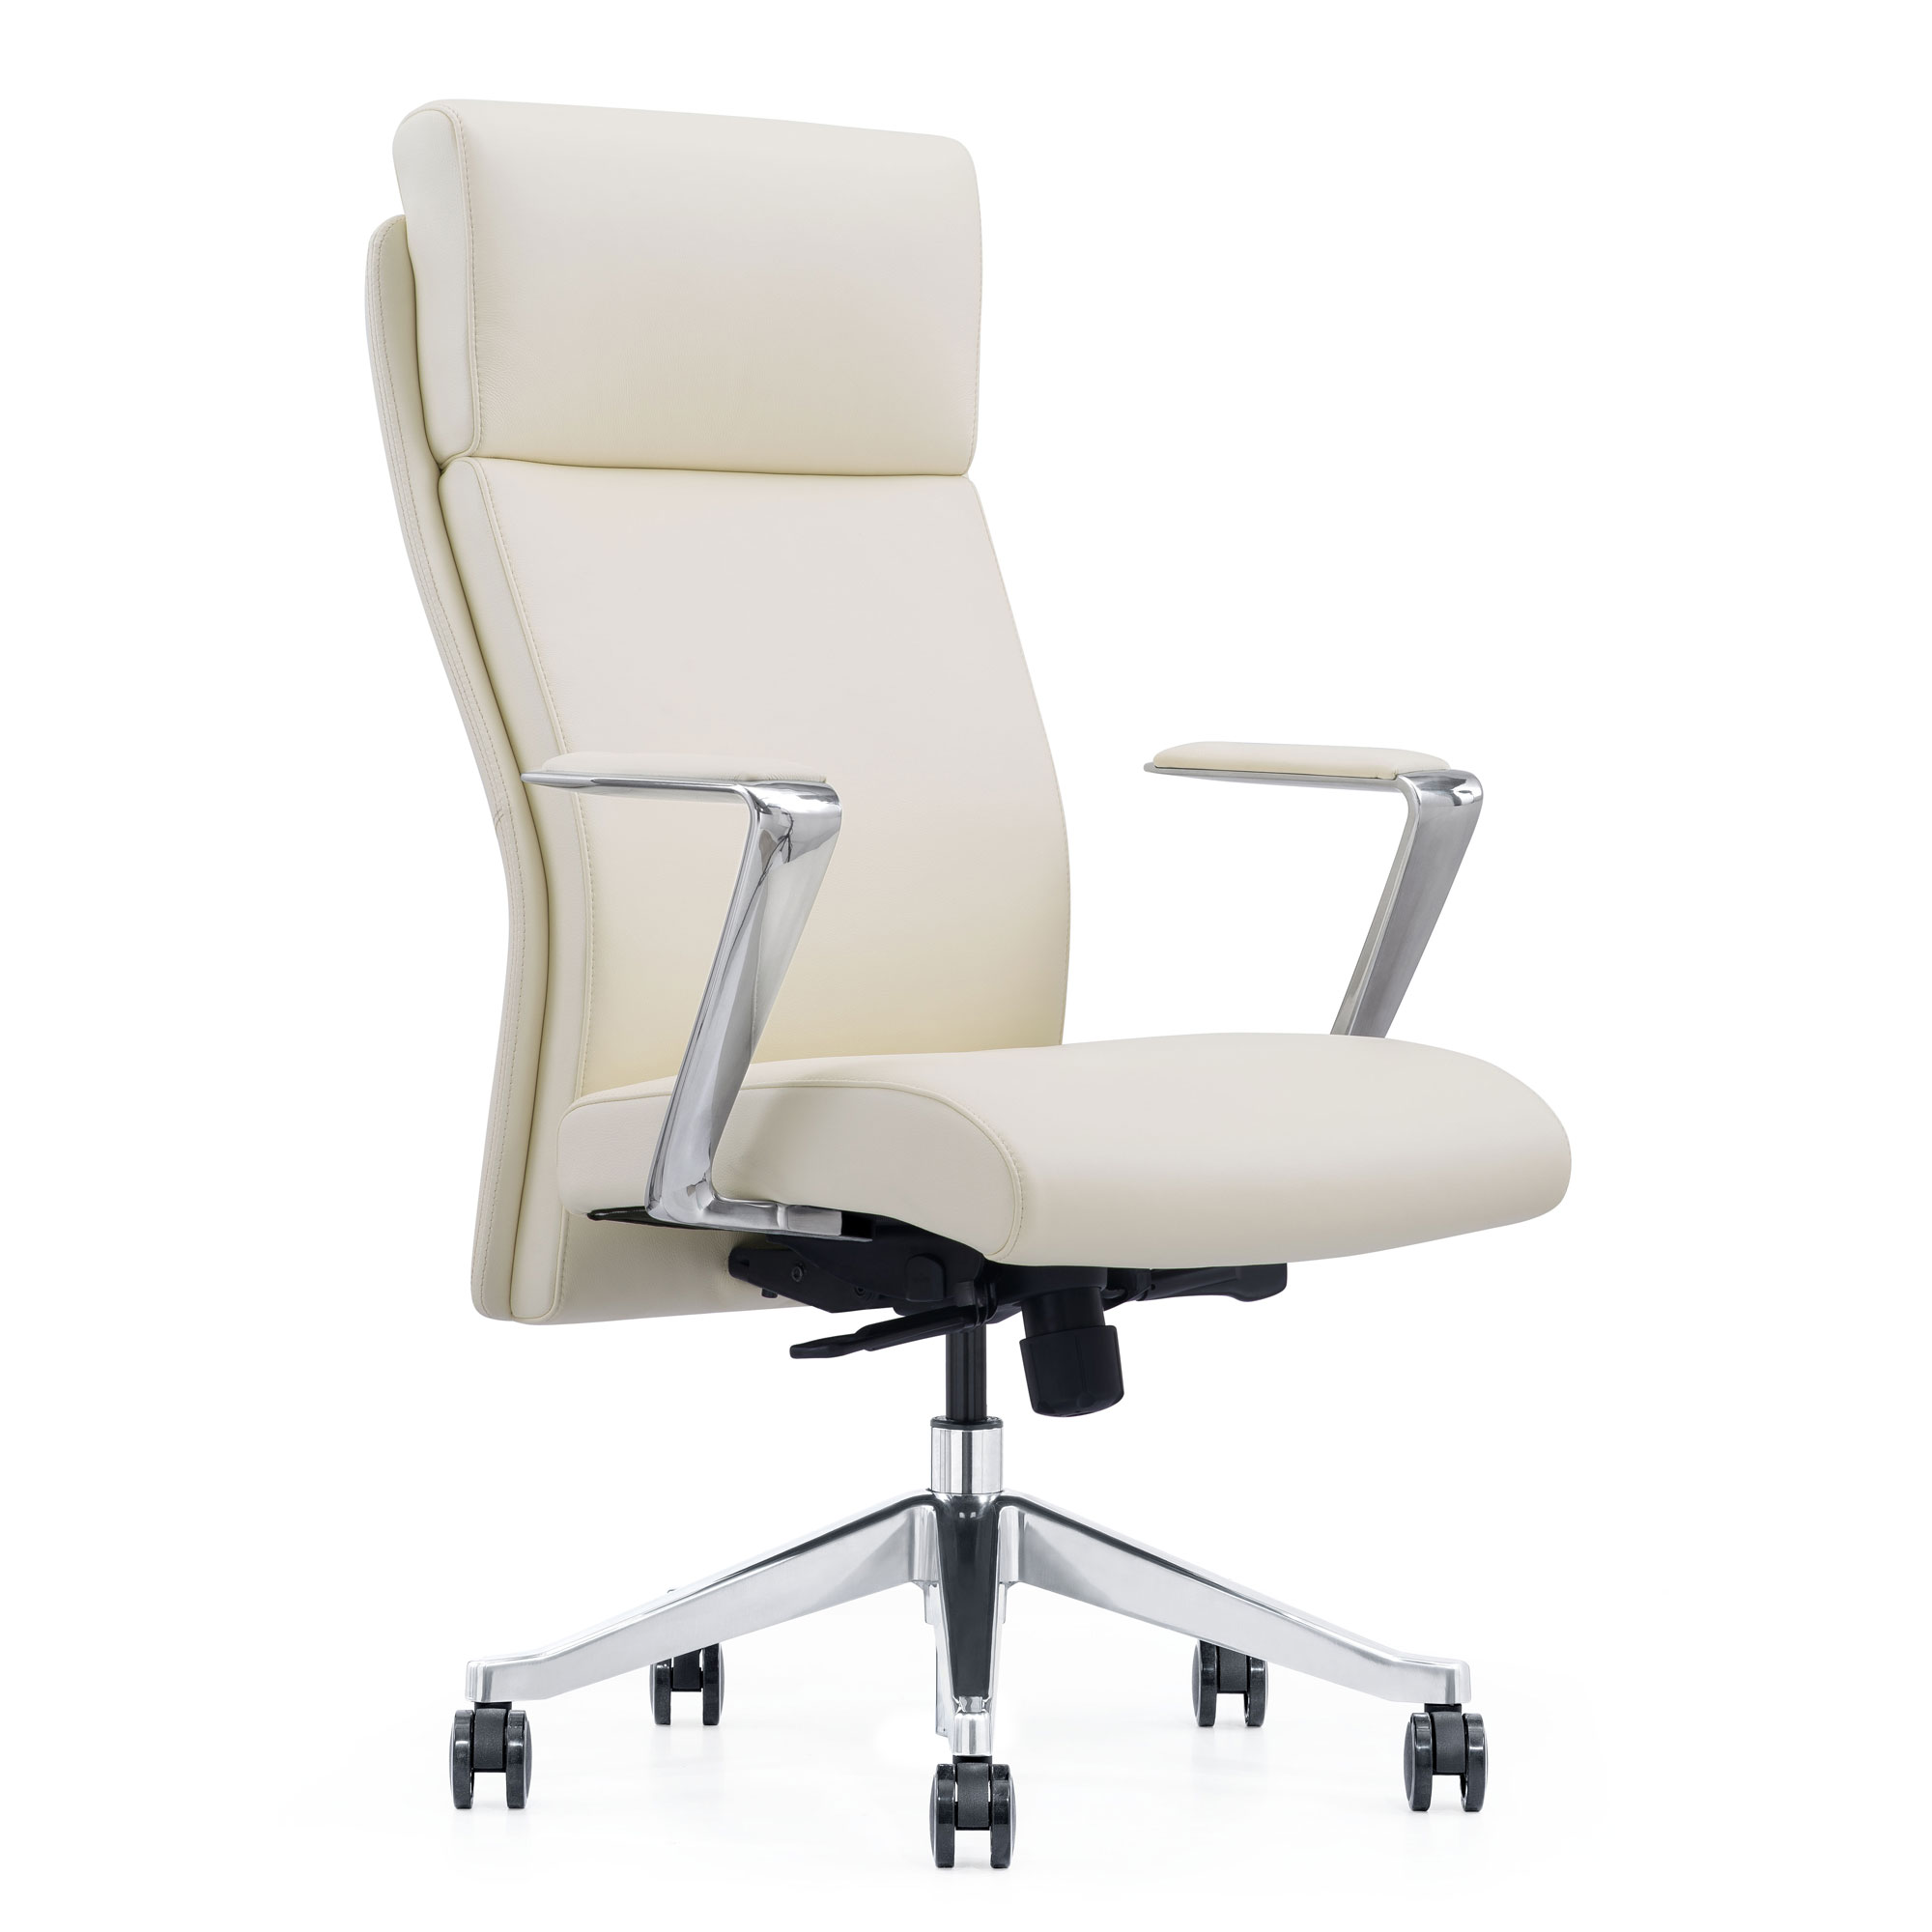 LOD68 Off-white leather chair with arms and wheels